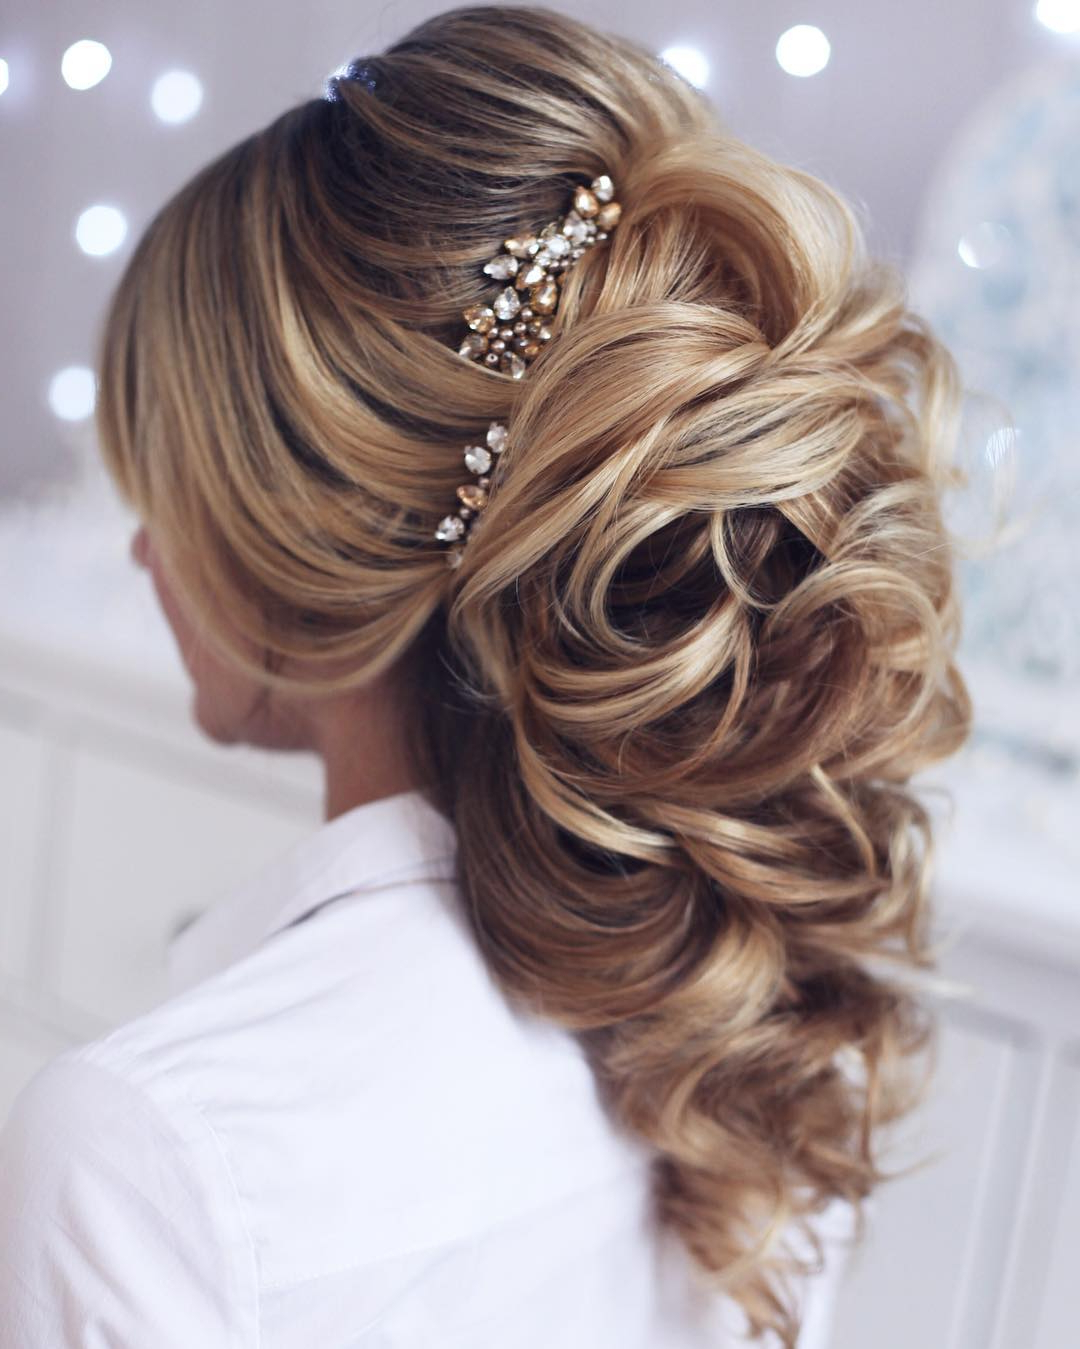 2017 Fabulous Cascade Of Loose Curls Bridal Hairstyles Regarding 10 Lavish Wedding Hairstyles For Long Hair – Wedding Hairstyle Ideas (Gallery 11 of 20)